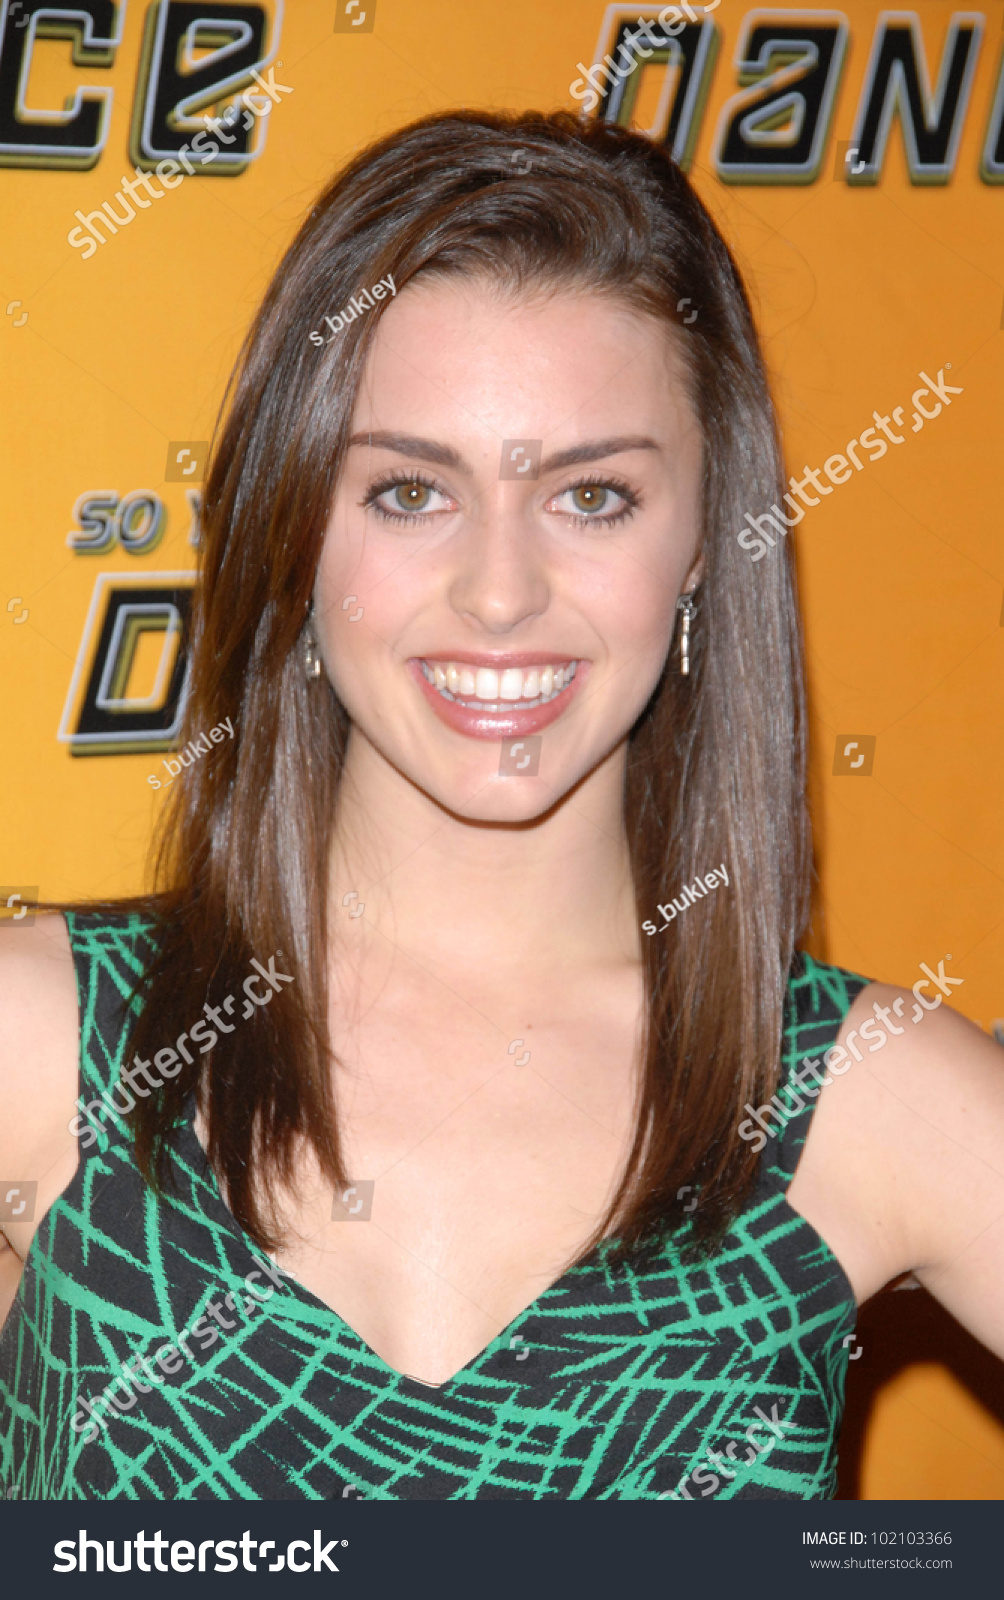 kathryn mccormick wikipediakathryn mccormick height, kathryn mccormick braveheart, kathryn mccormick wikipedia, kathryn mccormick muse, kathryn mccormick films, kathryn mccormick, kathryn mccormick instagram, kathryn mccormick boyfriend, kathryn mccormick wiki, kathryn mccormick dance, kathryn mccormick dancer, kathryn mccormick sytycd, kathryn mccormick 2015, kathryn mccormick dance off, kathryn mccormick dancing with the stars